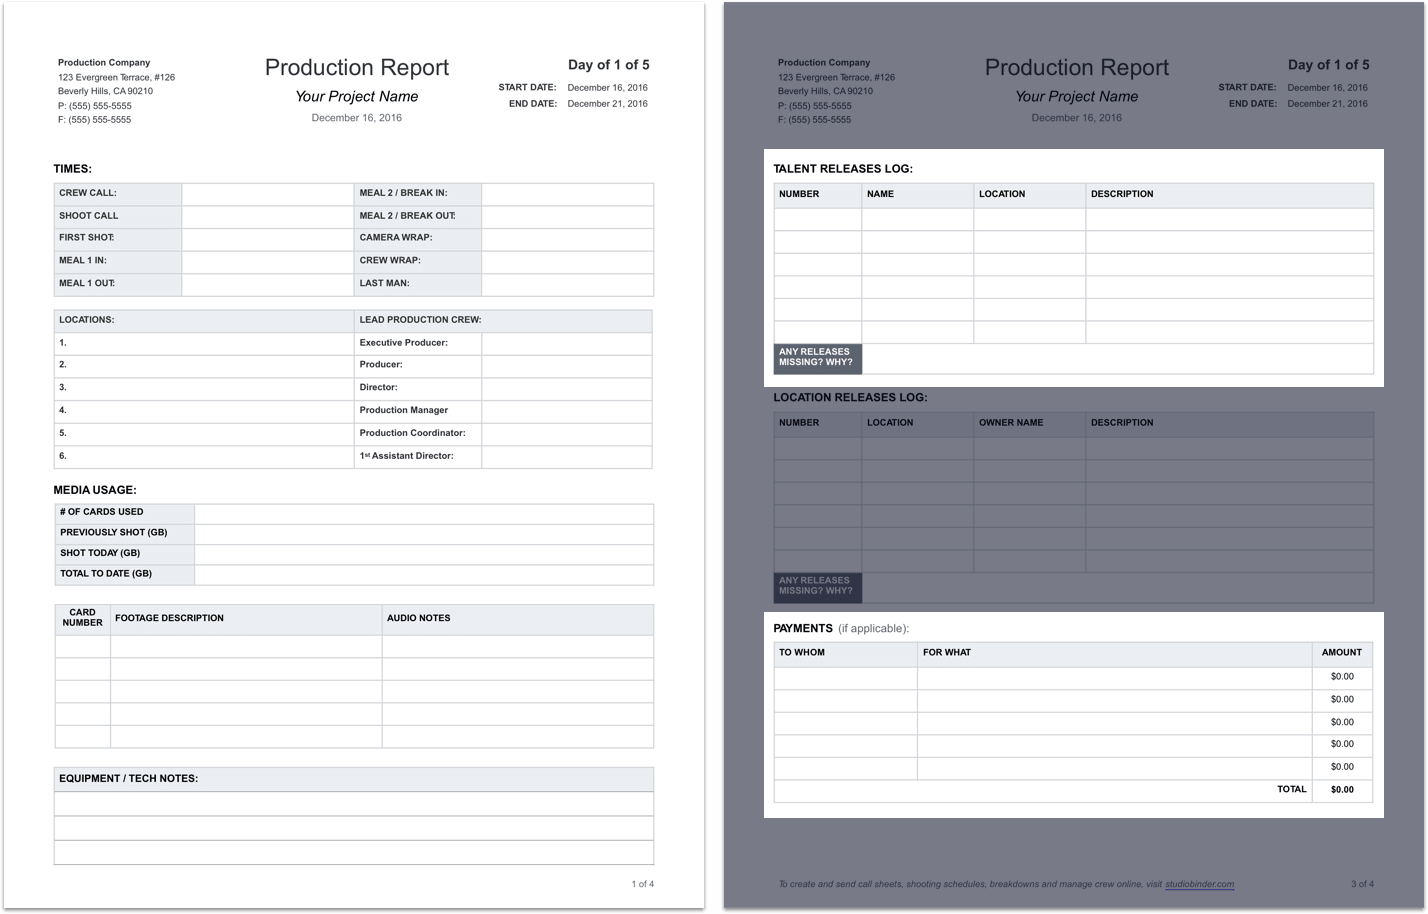 The Daily Production Report Explained With Free Template